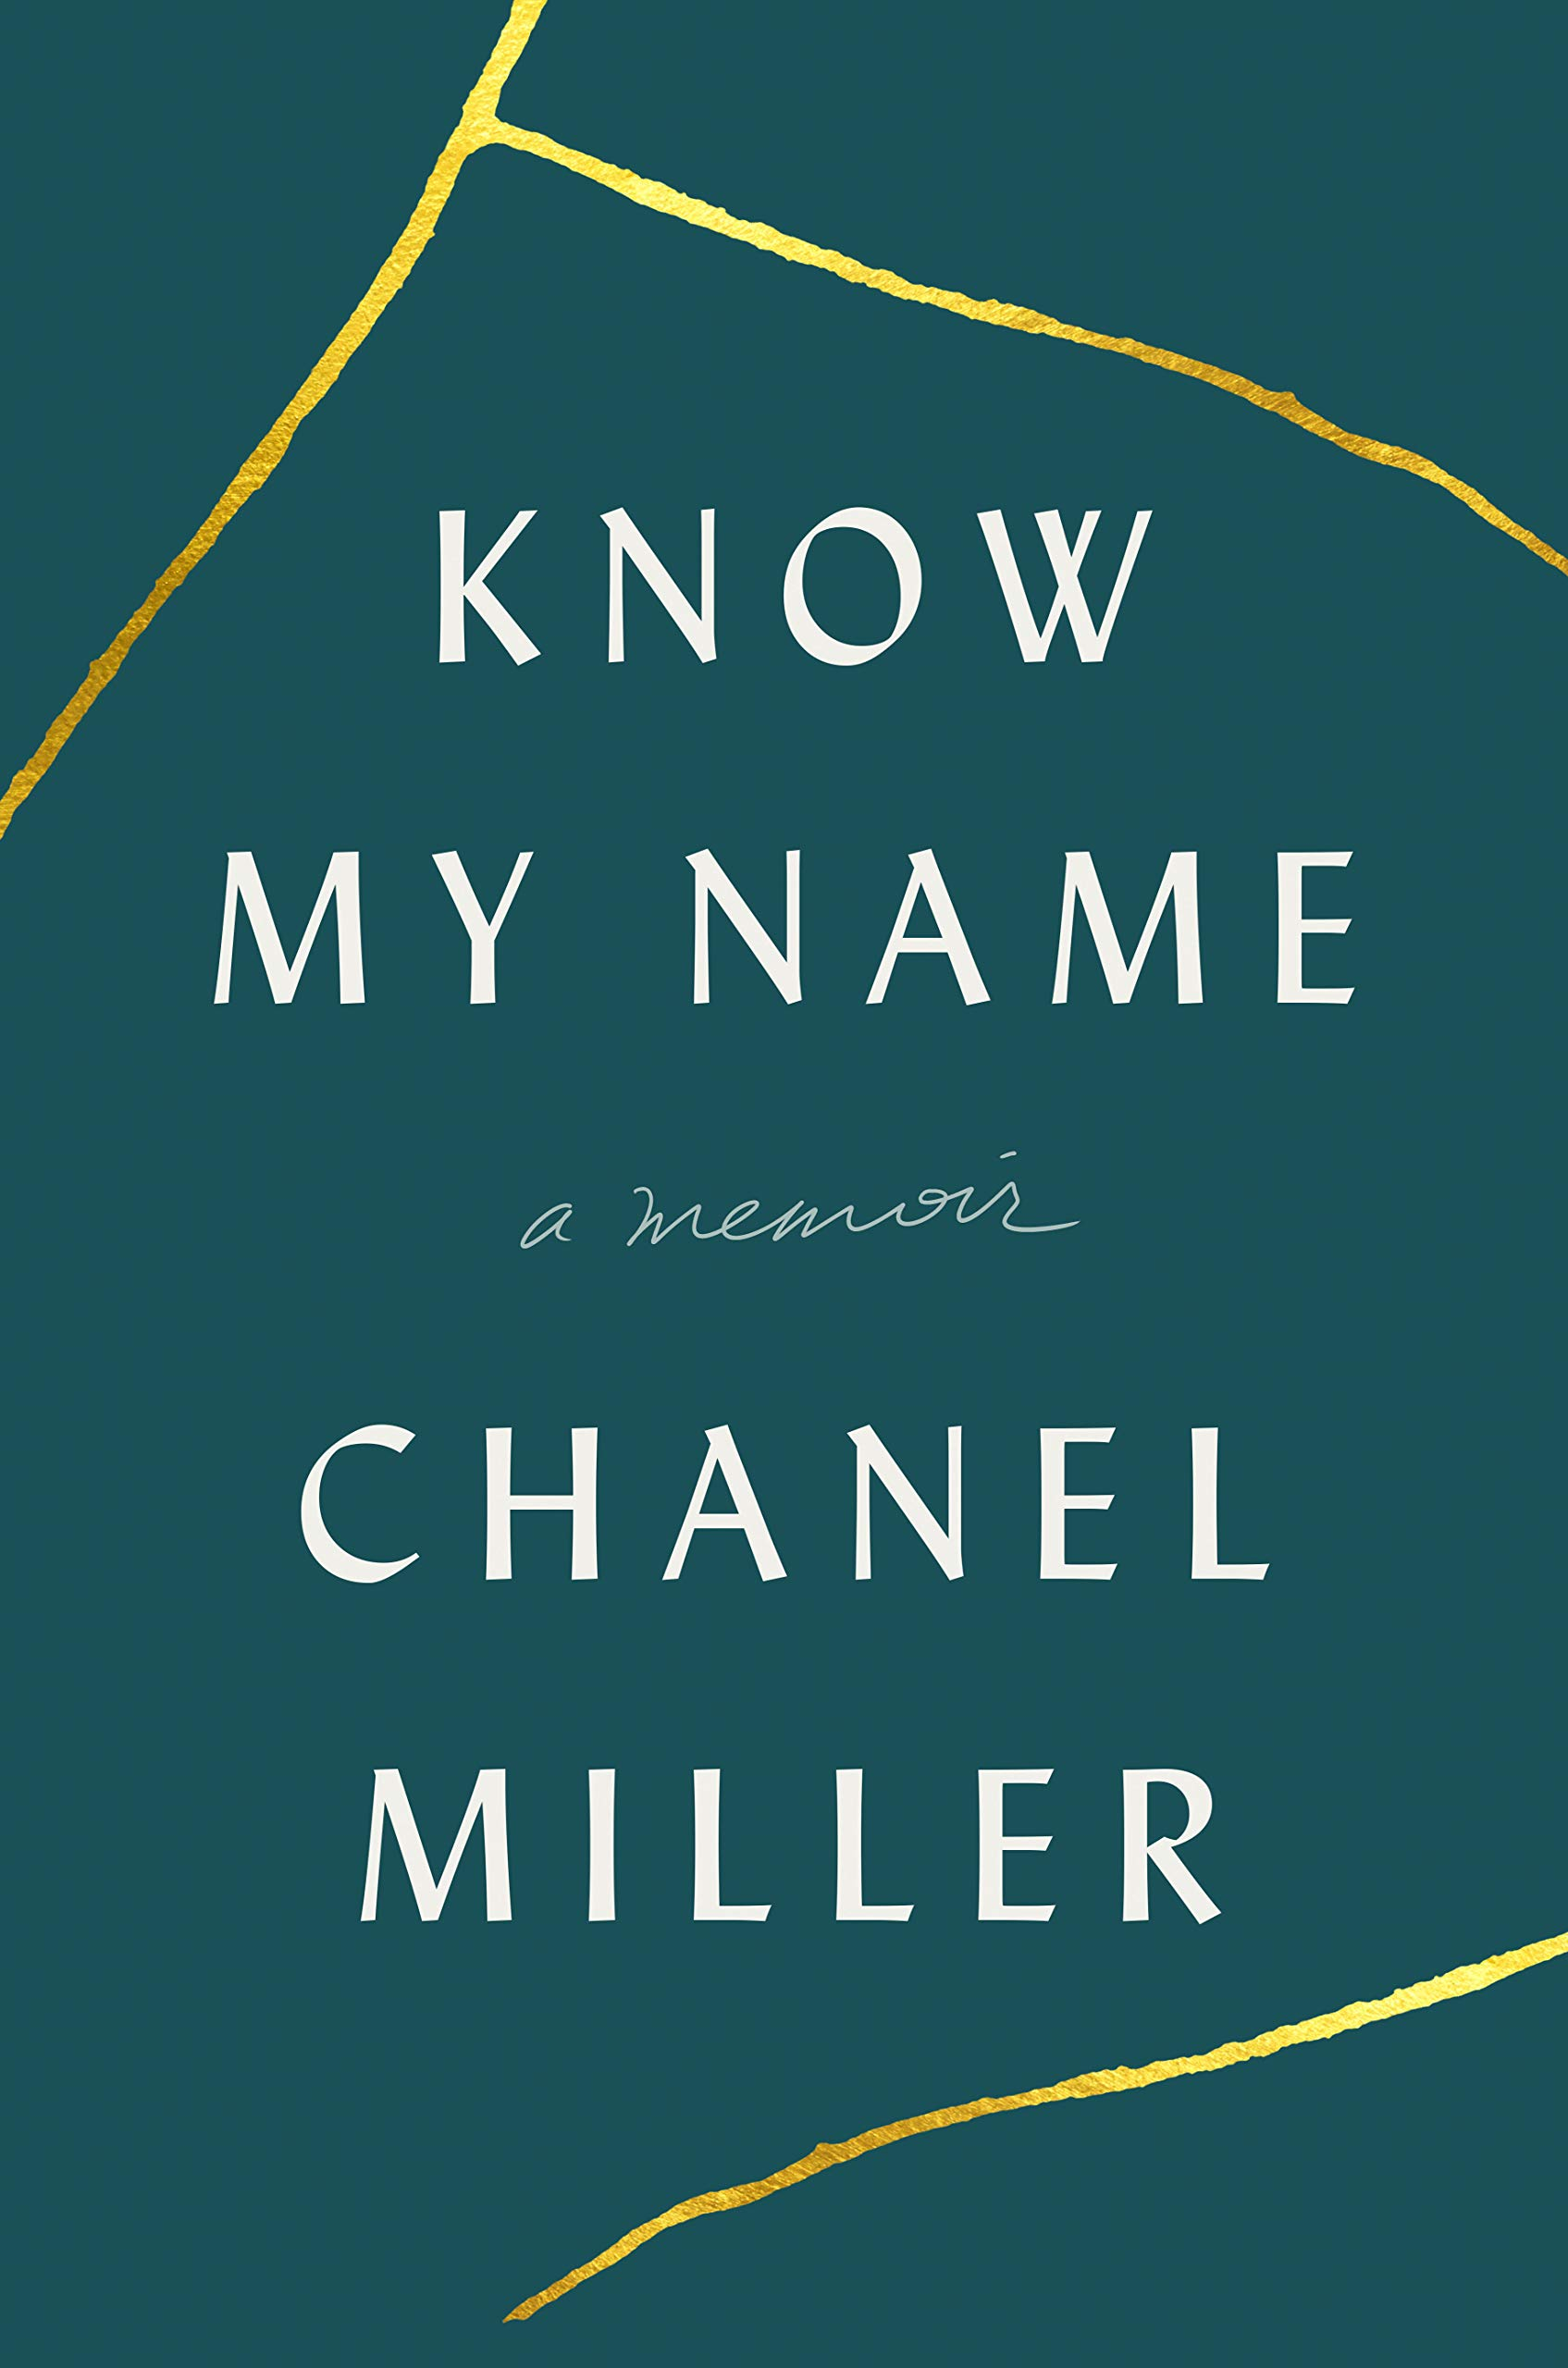 Know My Name: A Memoir by Chanel Miller (Viking)